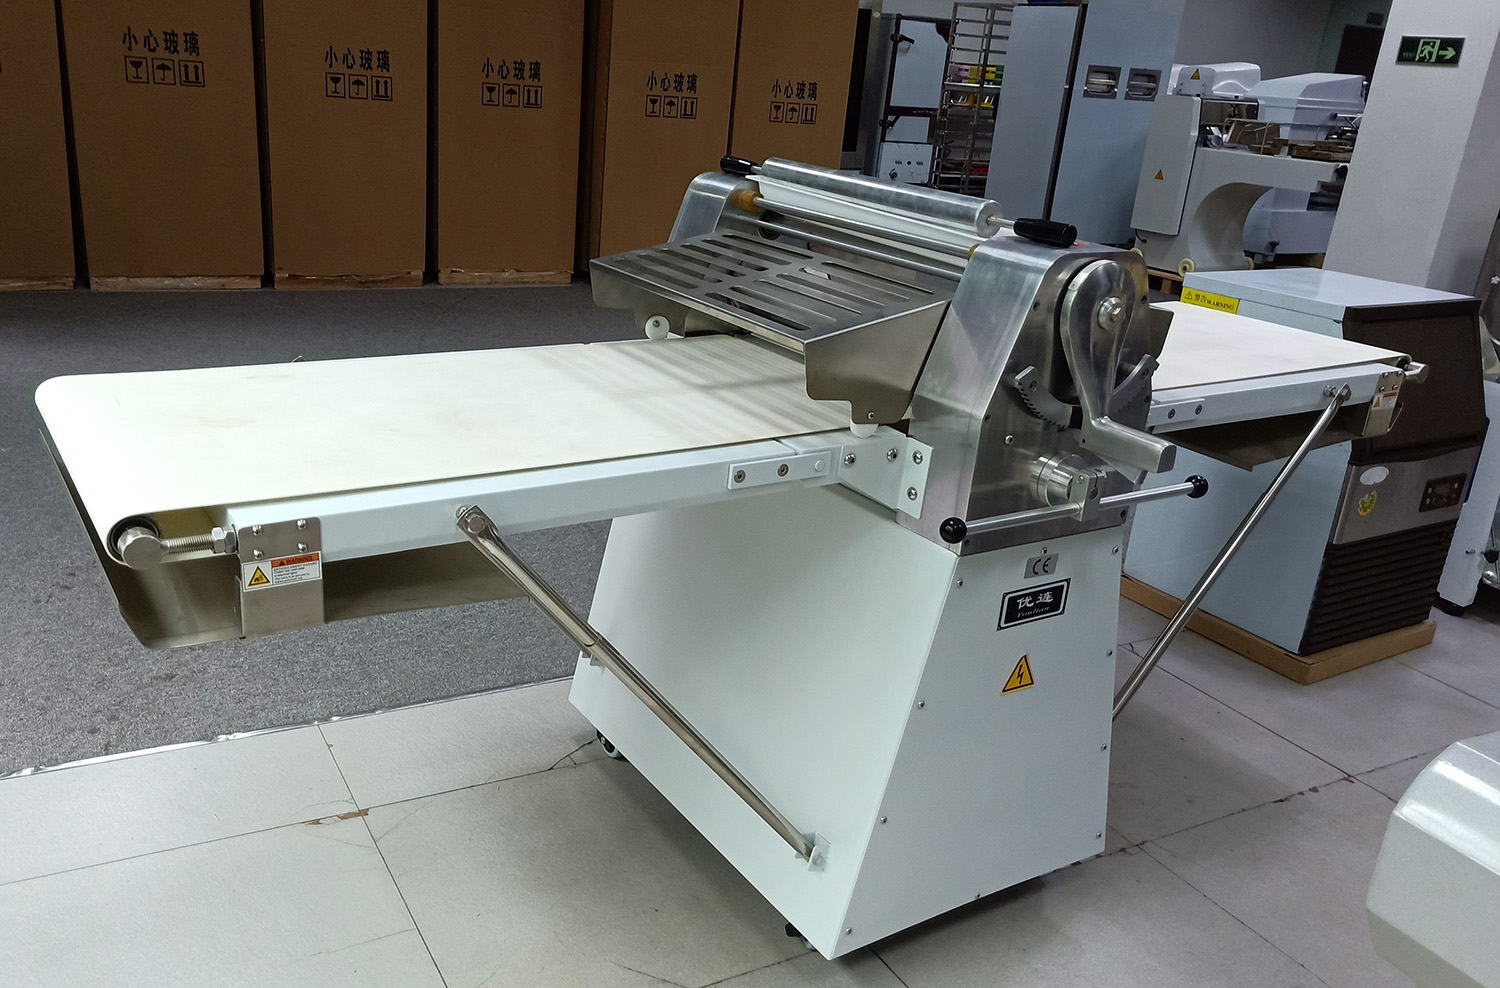 New Vertical Industrial Bread Dough Sheeter Desktop Crisp Pastry Food Mixing Machine for Sales